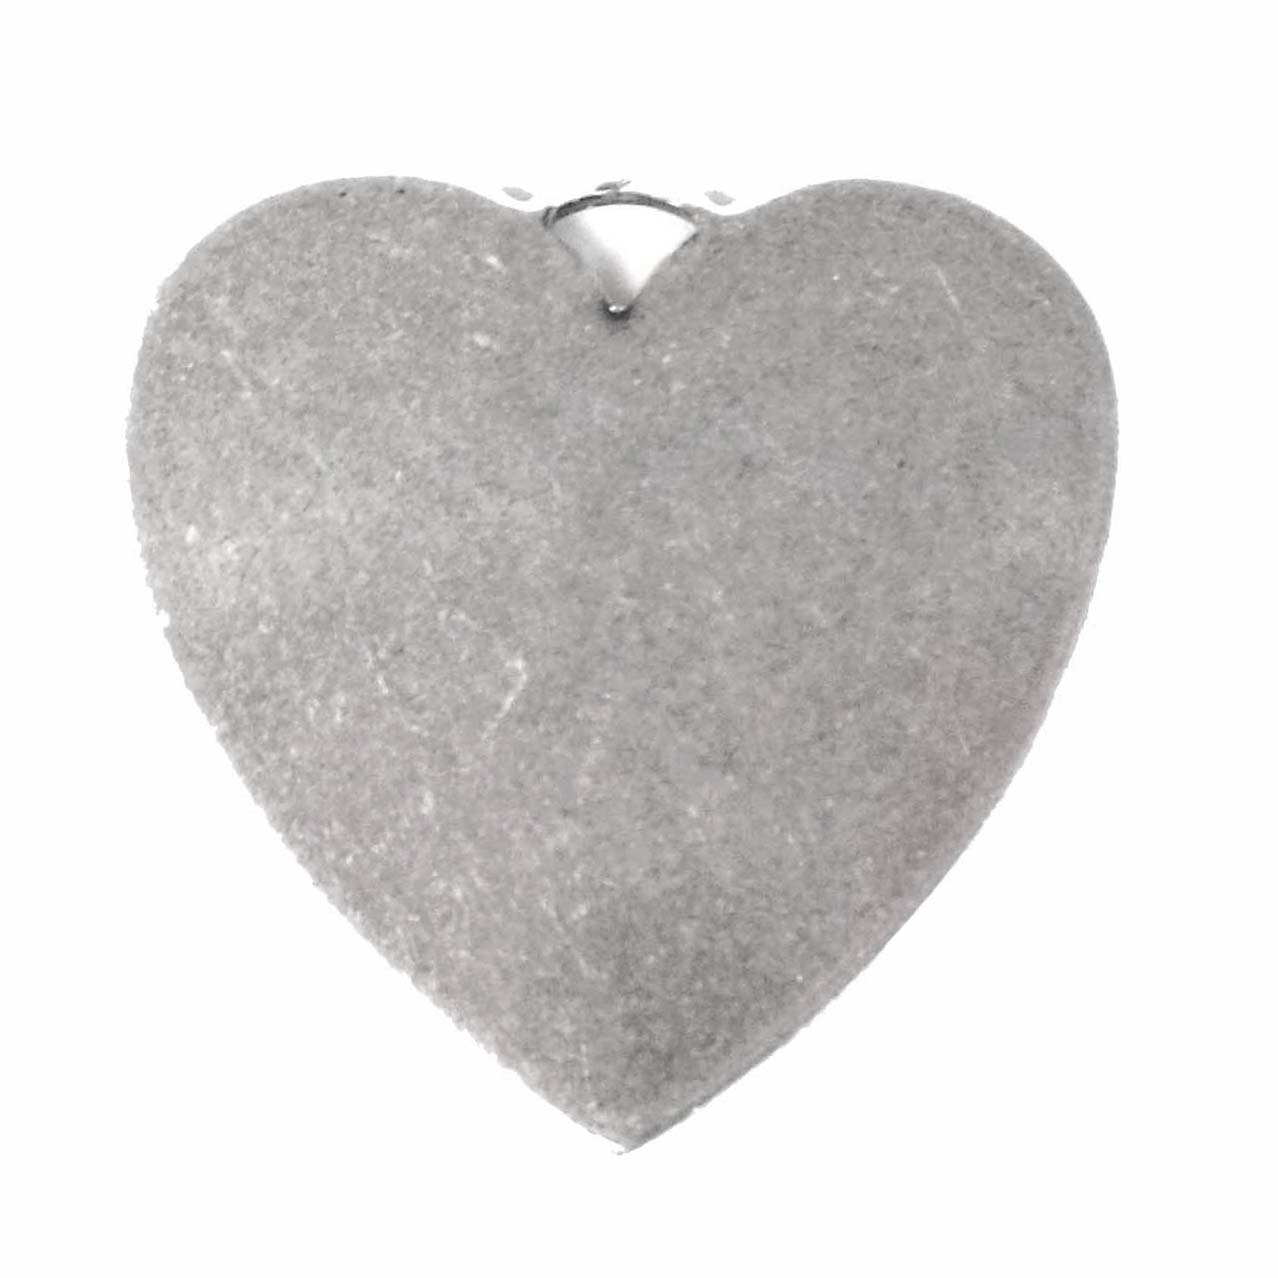 heart blank, brass hearts, jewelry making, 06388, silverware silverplate, silver plating, antique silver, heart pendants, brass blanks, brass jewelry parts, heart stampings, brass jewelry supplies, vintage jewelry supplies